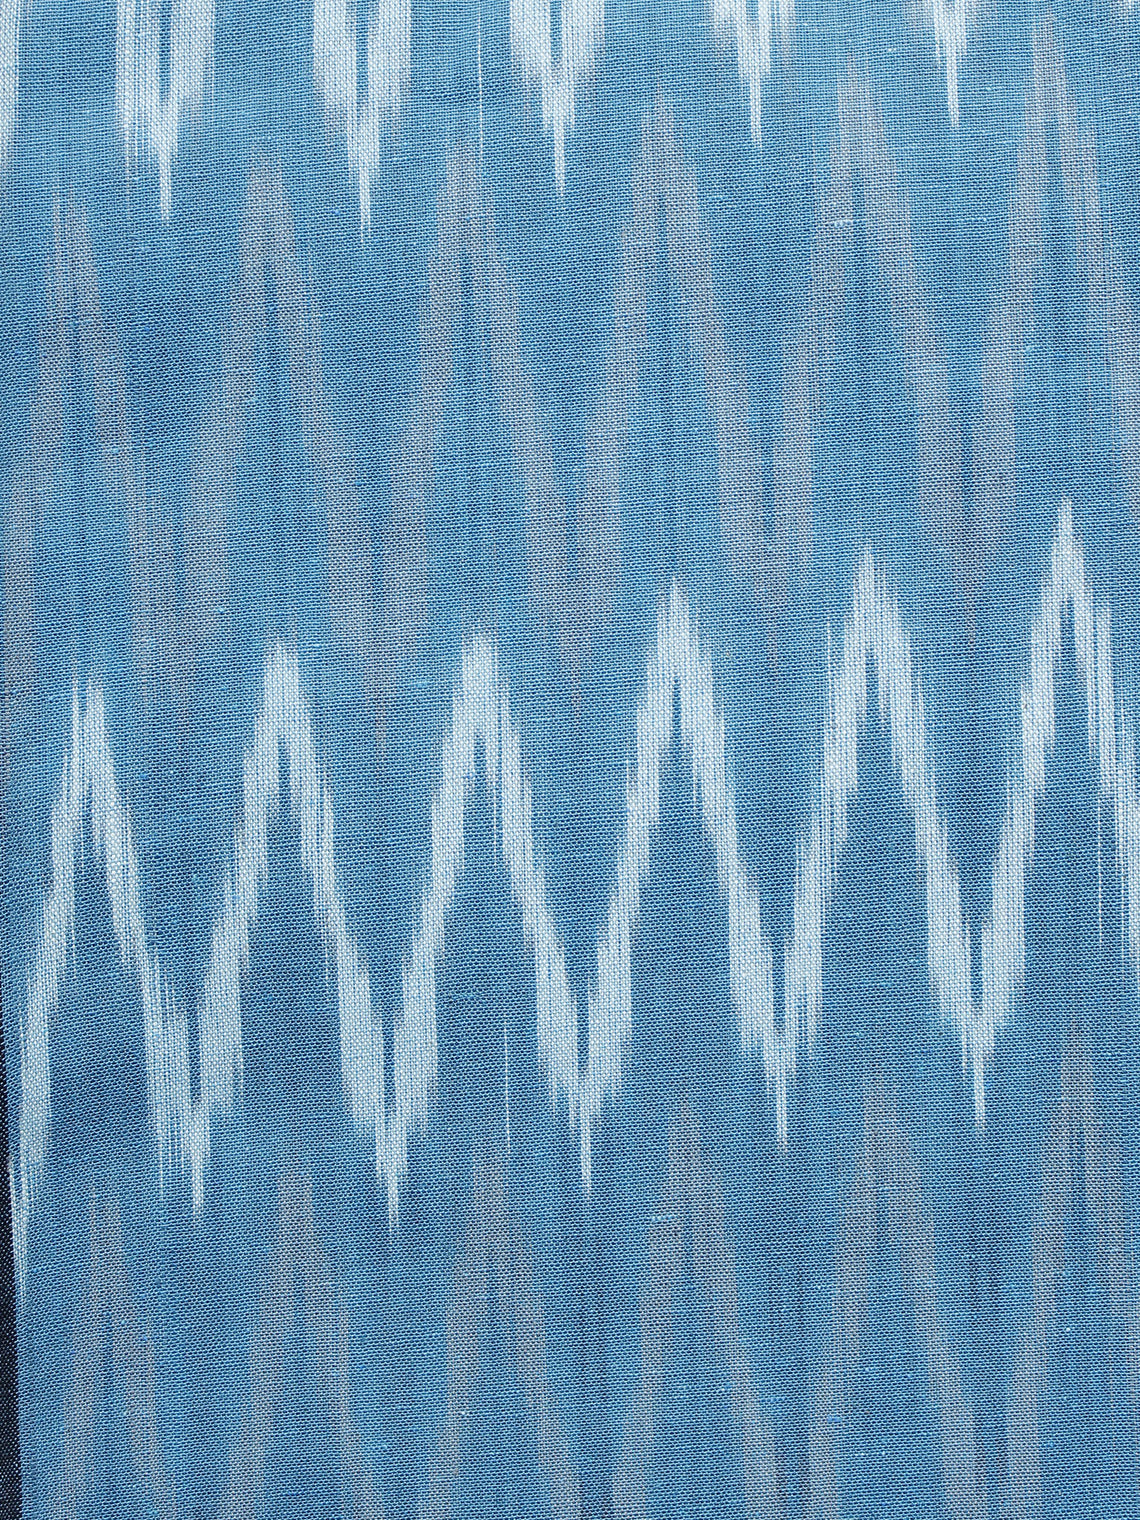 Sky Blue Ivory Pochampally Hand Woven Ikat Fabric Per Meter - F002F968